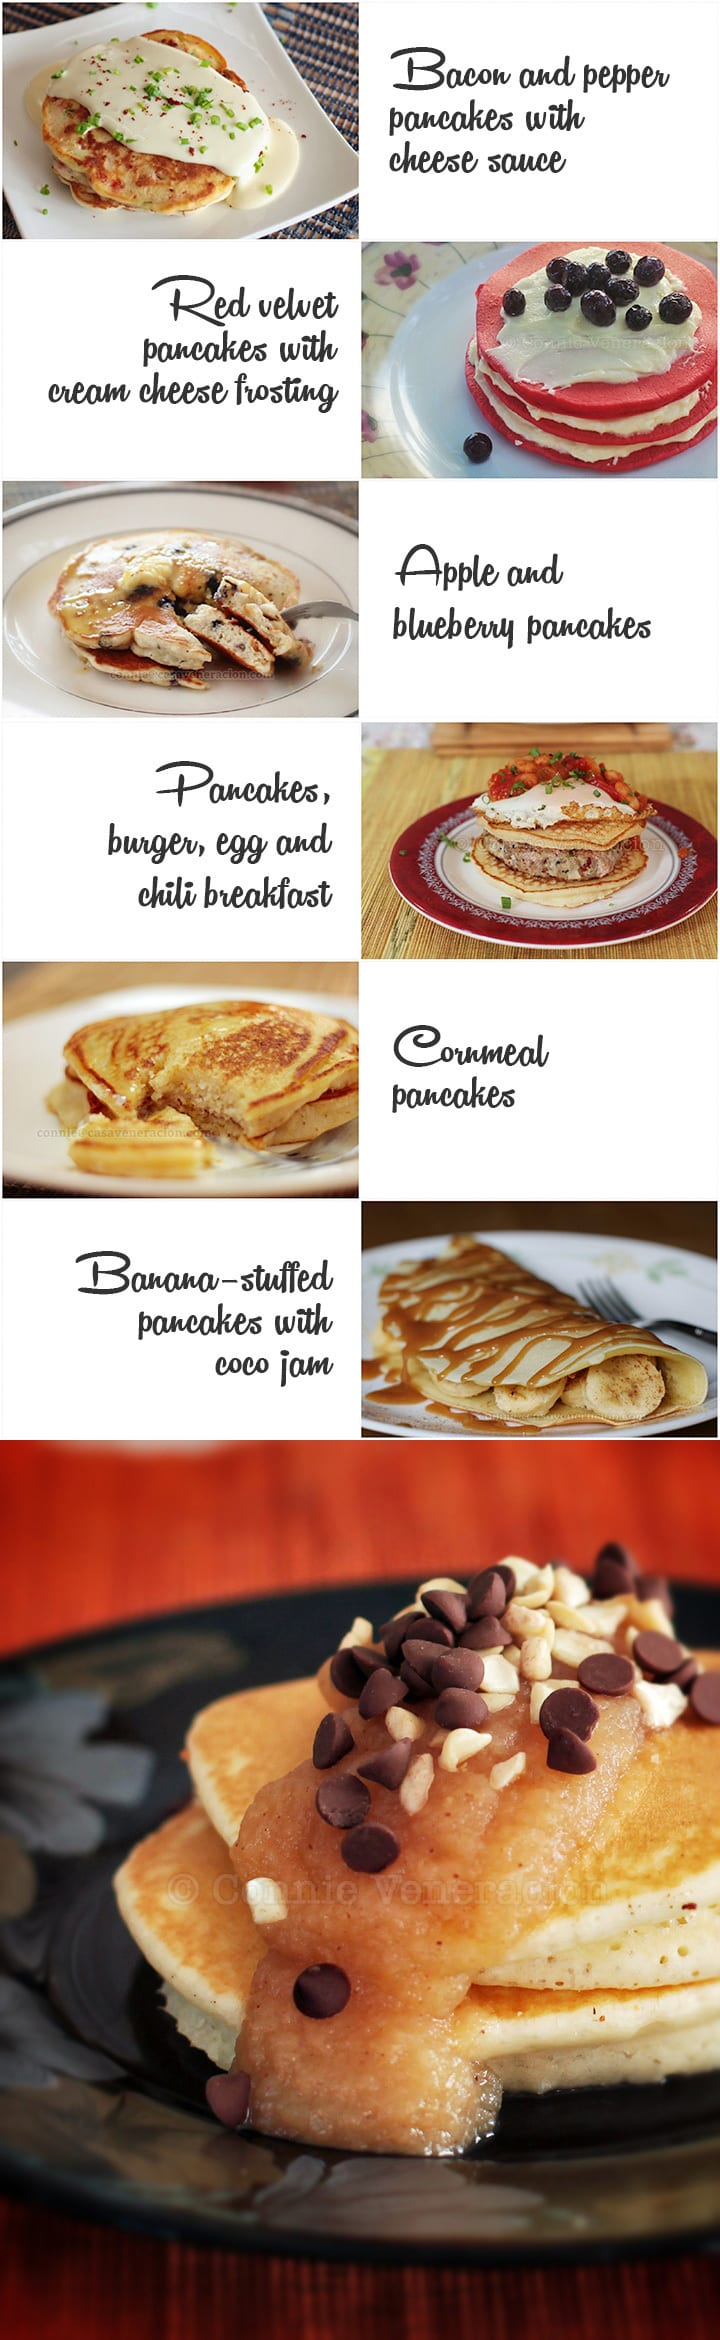 7 ways to breathe new life into good old-fashioned pancakes